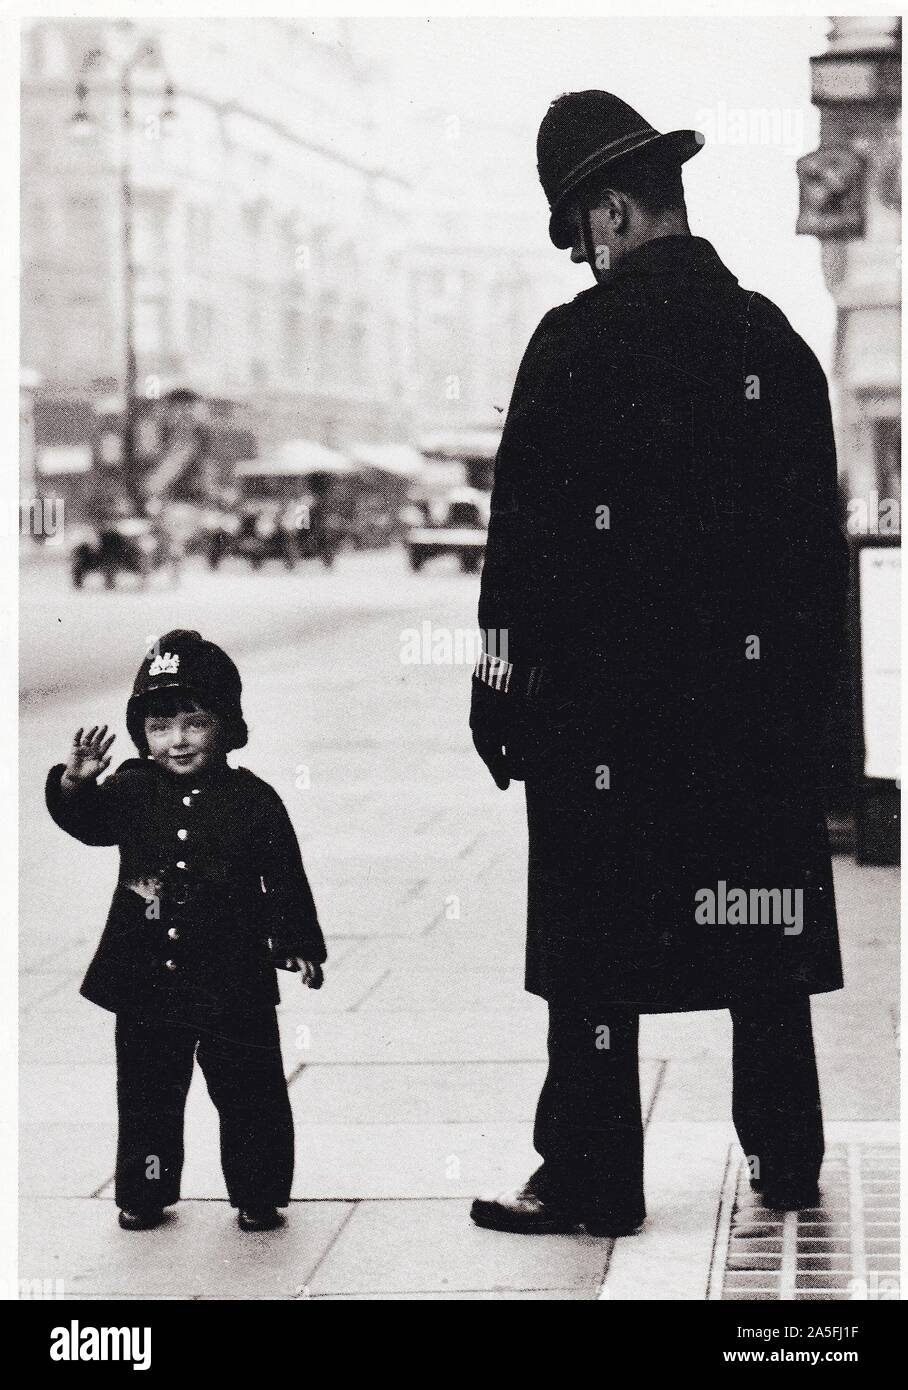 Vintage black and white postcard showing 1937 Bobbys (Policemen) with young boy dressed in uniform, view of 1930s London in background. Stock Photo